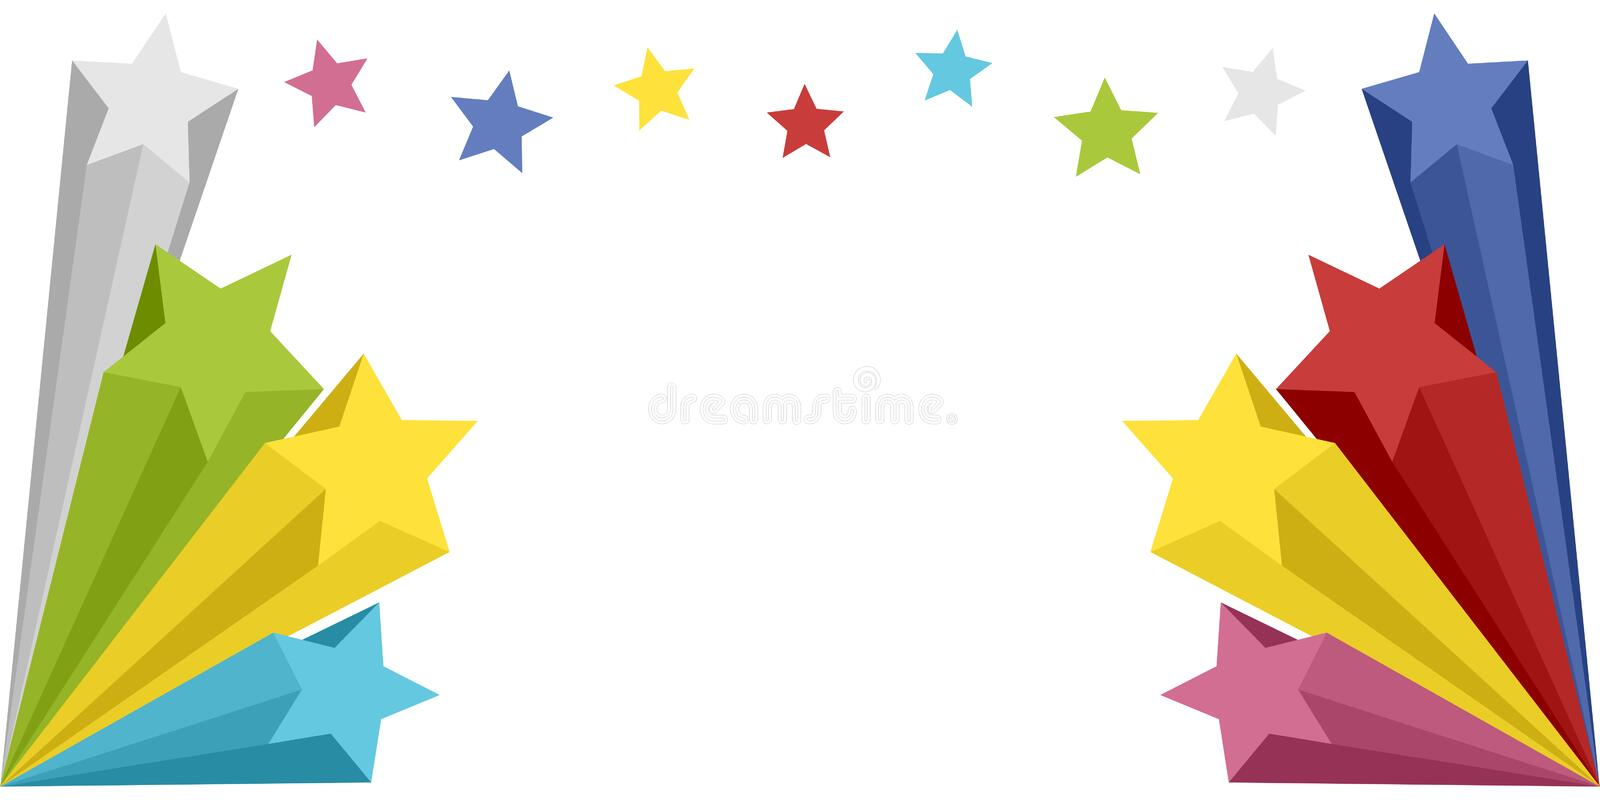 Stars Explosion Banner. Colorful stars explosion banner on white background. Empty space for a message. Eps file available